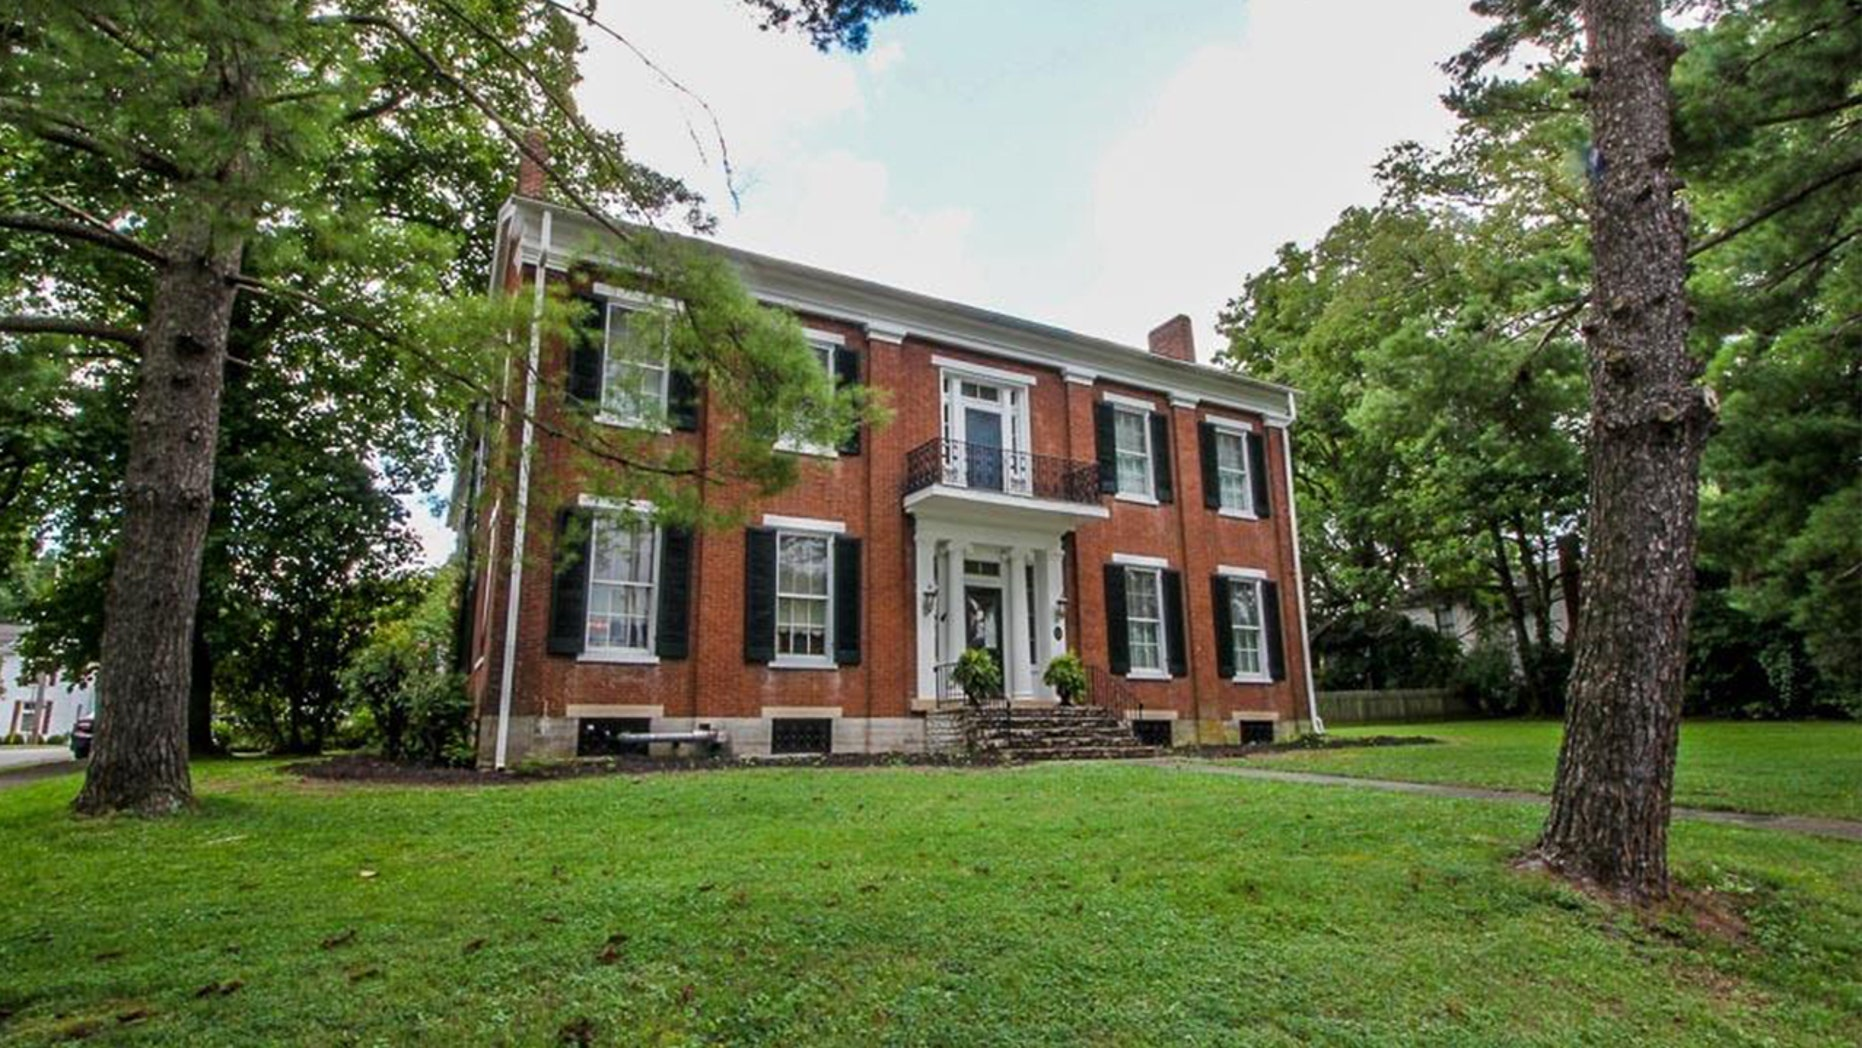 Built in 1842, this Georgian-style colonial for sale in Millersburg features four bedroom, two full bathrooms, and what's rumored to be quite a storied past.